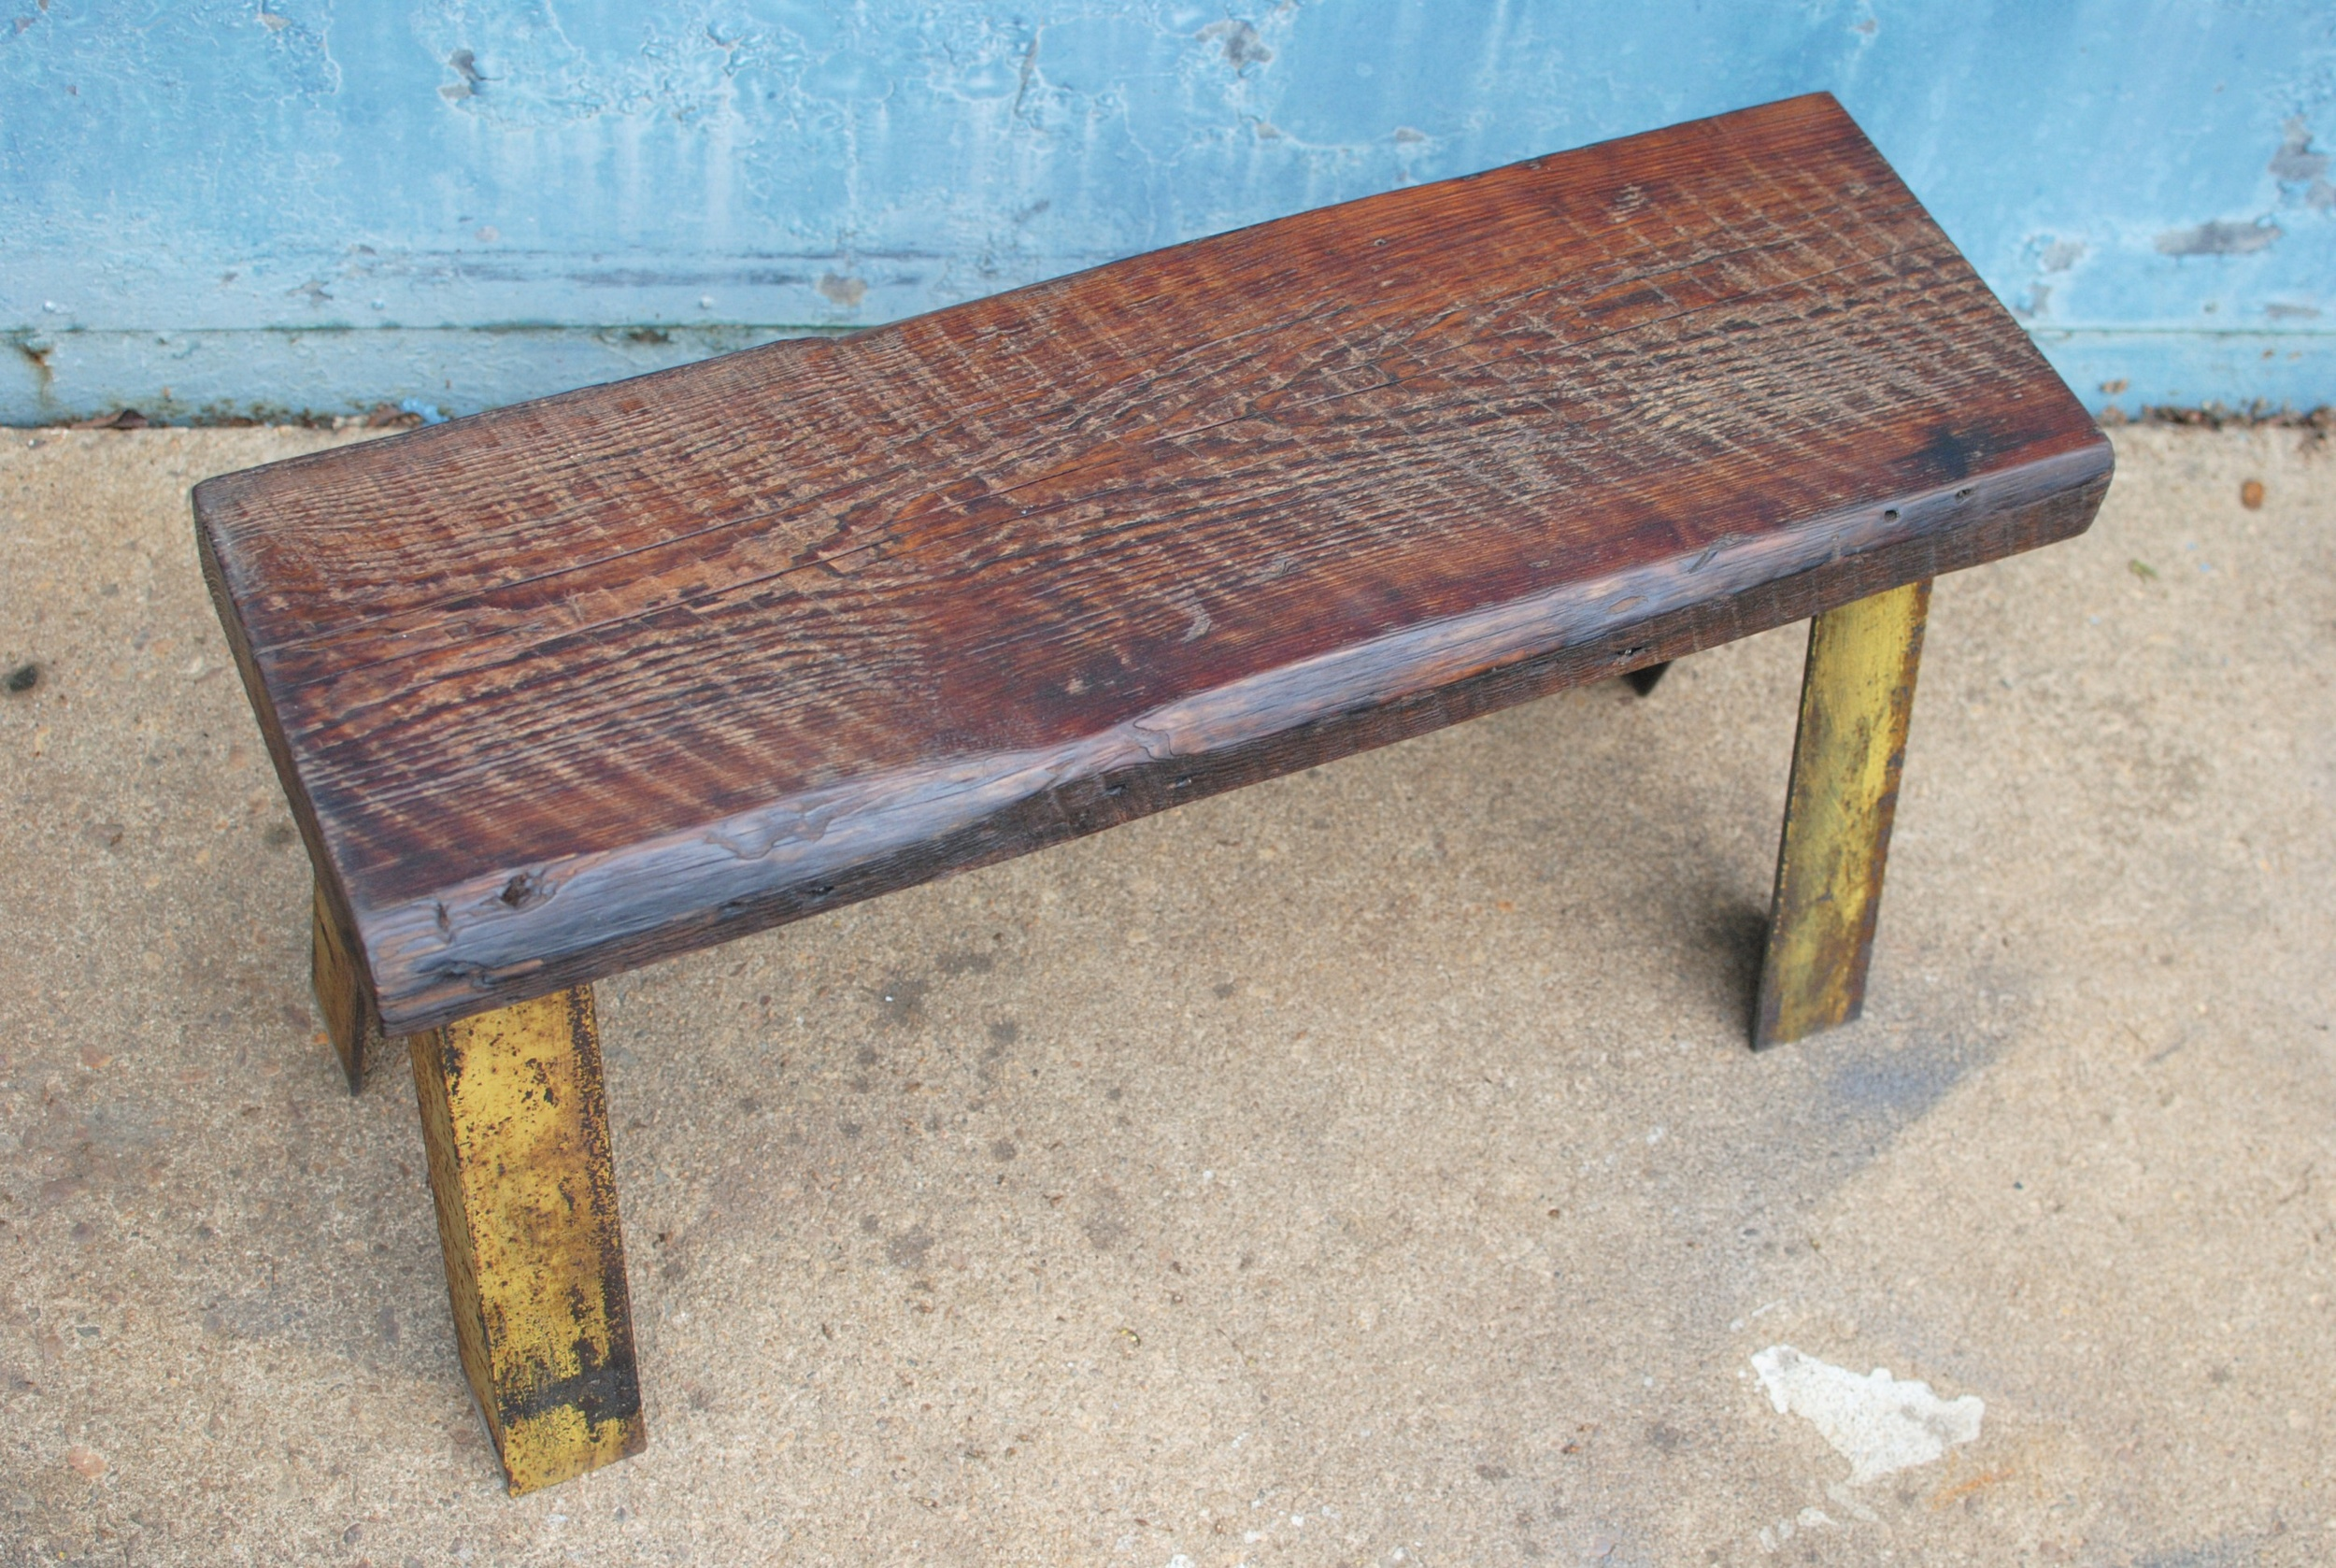 Bench with reclaimed wood seat and industrial metal legs